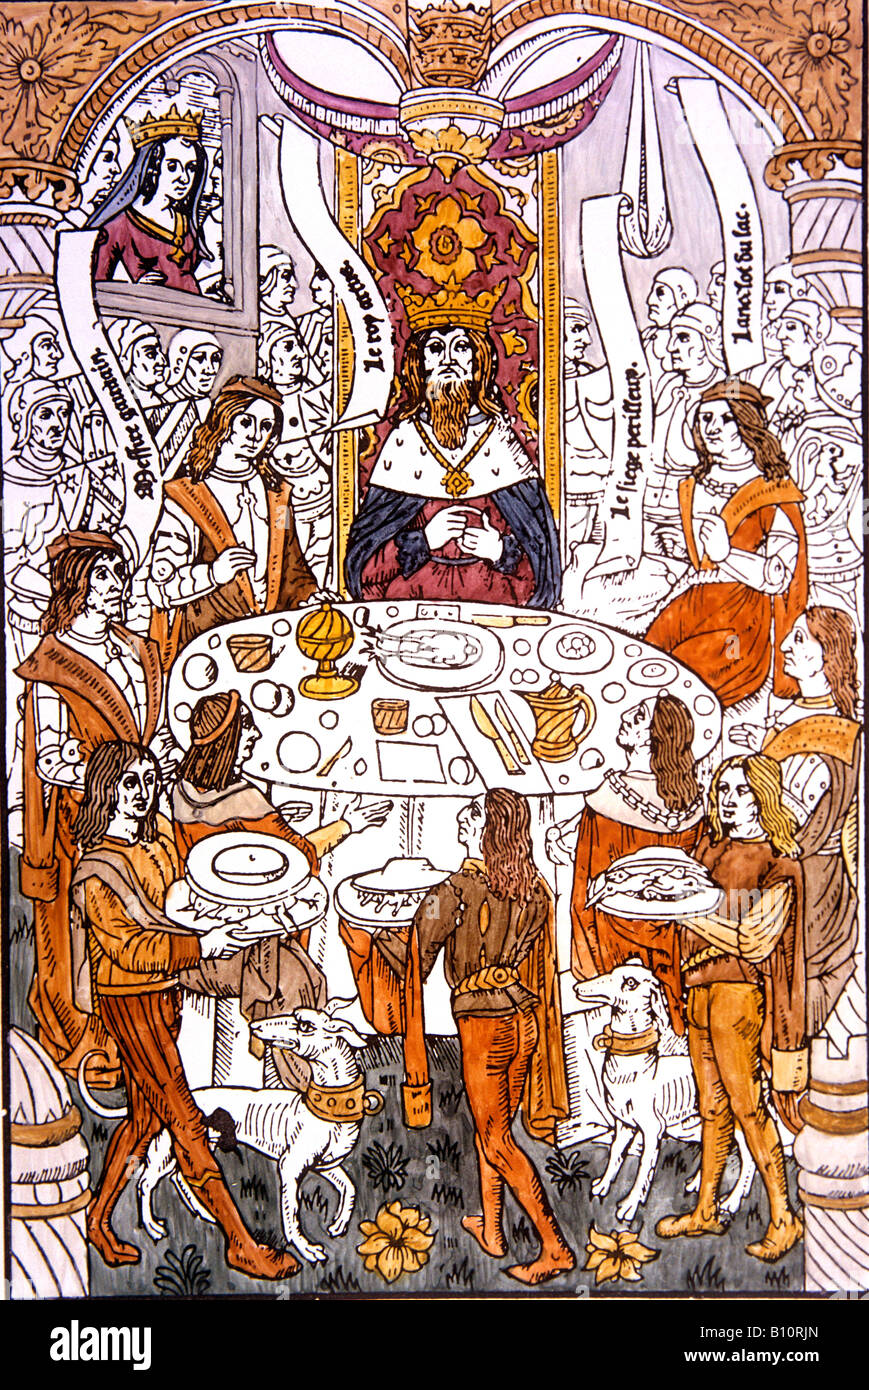 King Arthur and the Knights of the Round Table . From 'Roman de la Table Rond' 1488 .15th c. drawing. - Stock Image